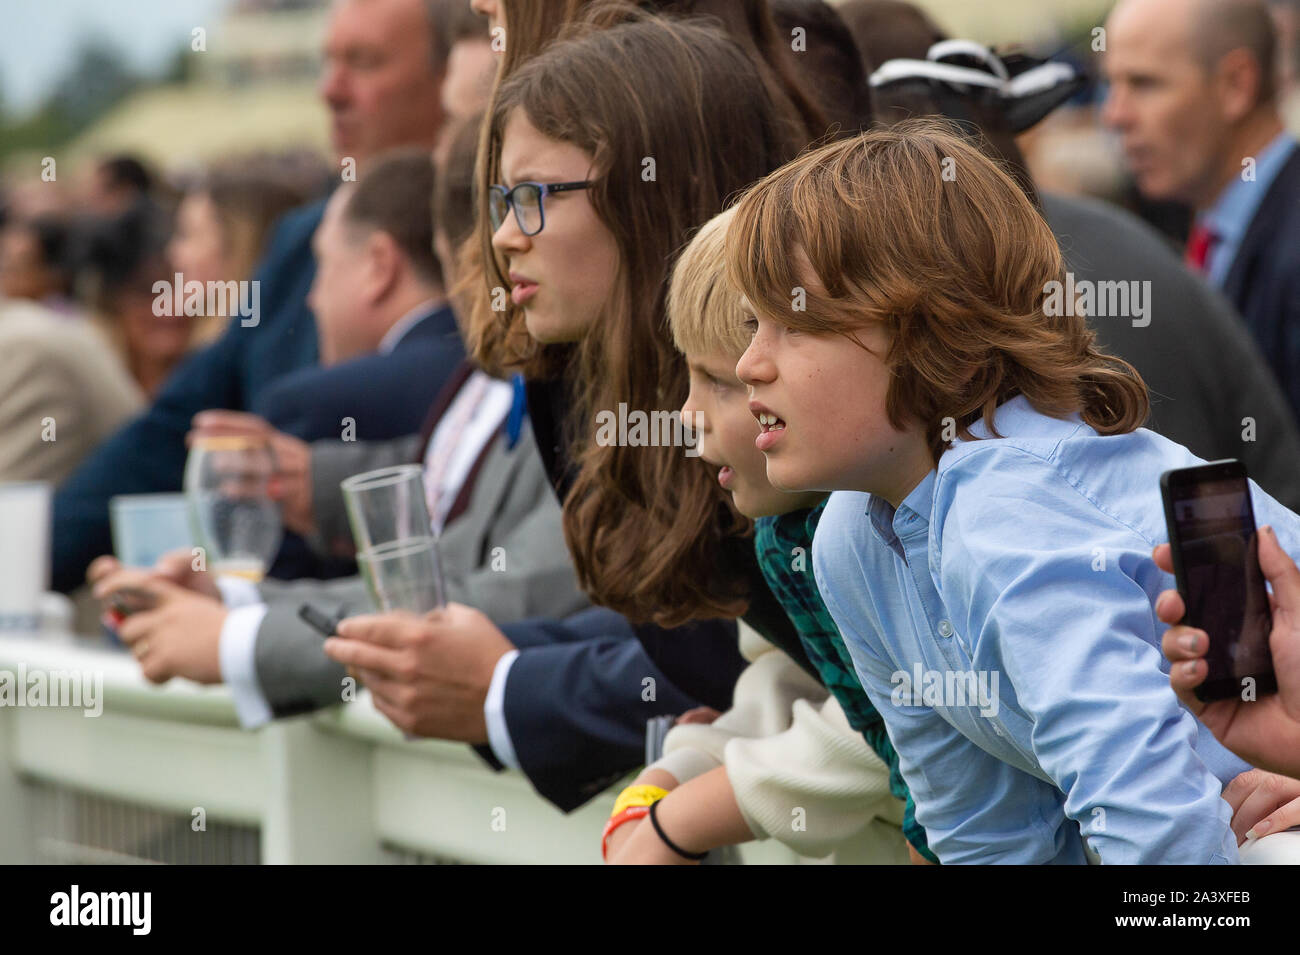 Autumn Racing Weekend & Ascot Beer Festival, Ascot Racecourse, Ascot, Berkshire, UK. 5th October, 2019. Racegoers enjoying the racing. Credit: Maureen McLean/Alamy Stock Photo